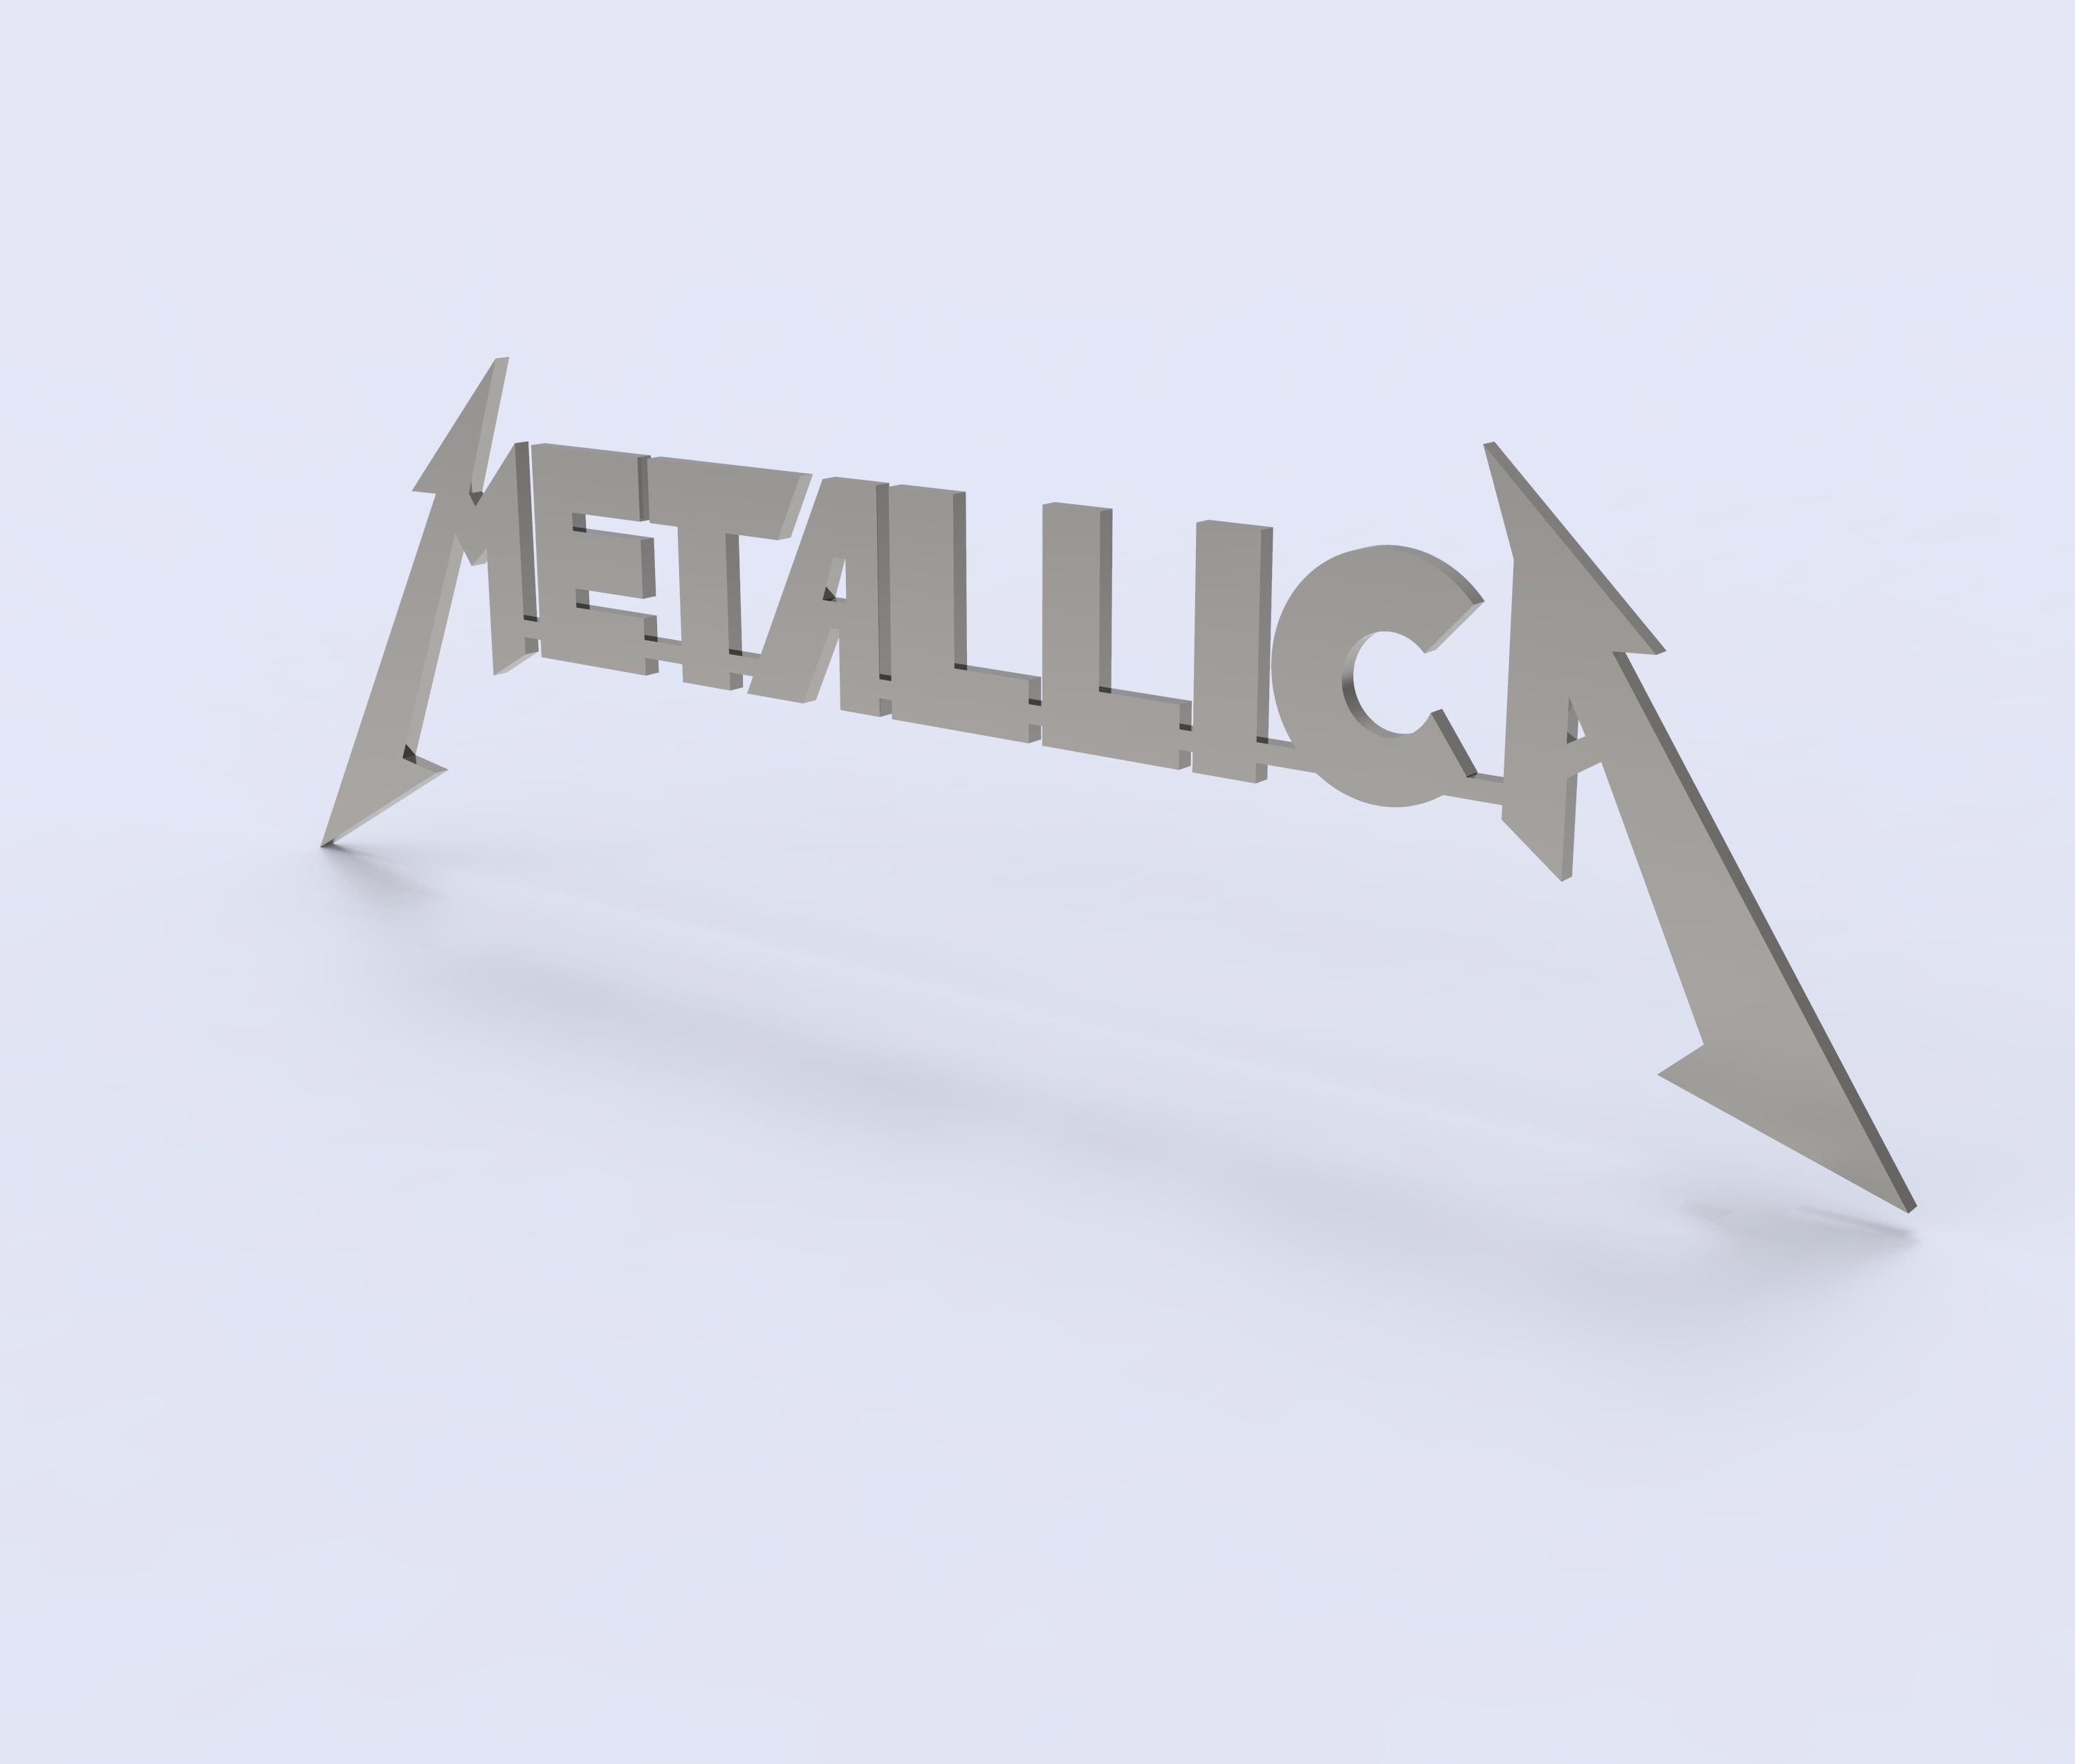 Metallica Logo for 3D print and laser cutting from sheet metal